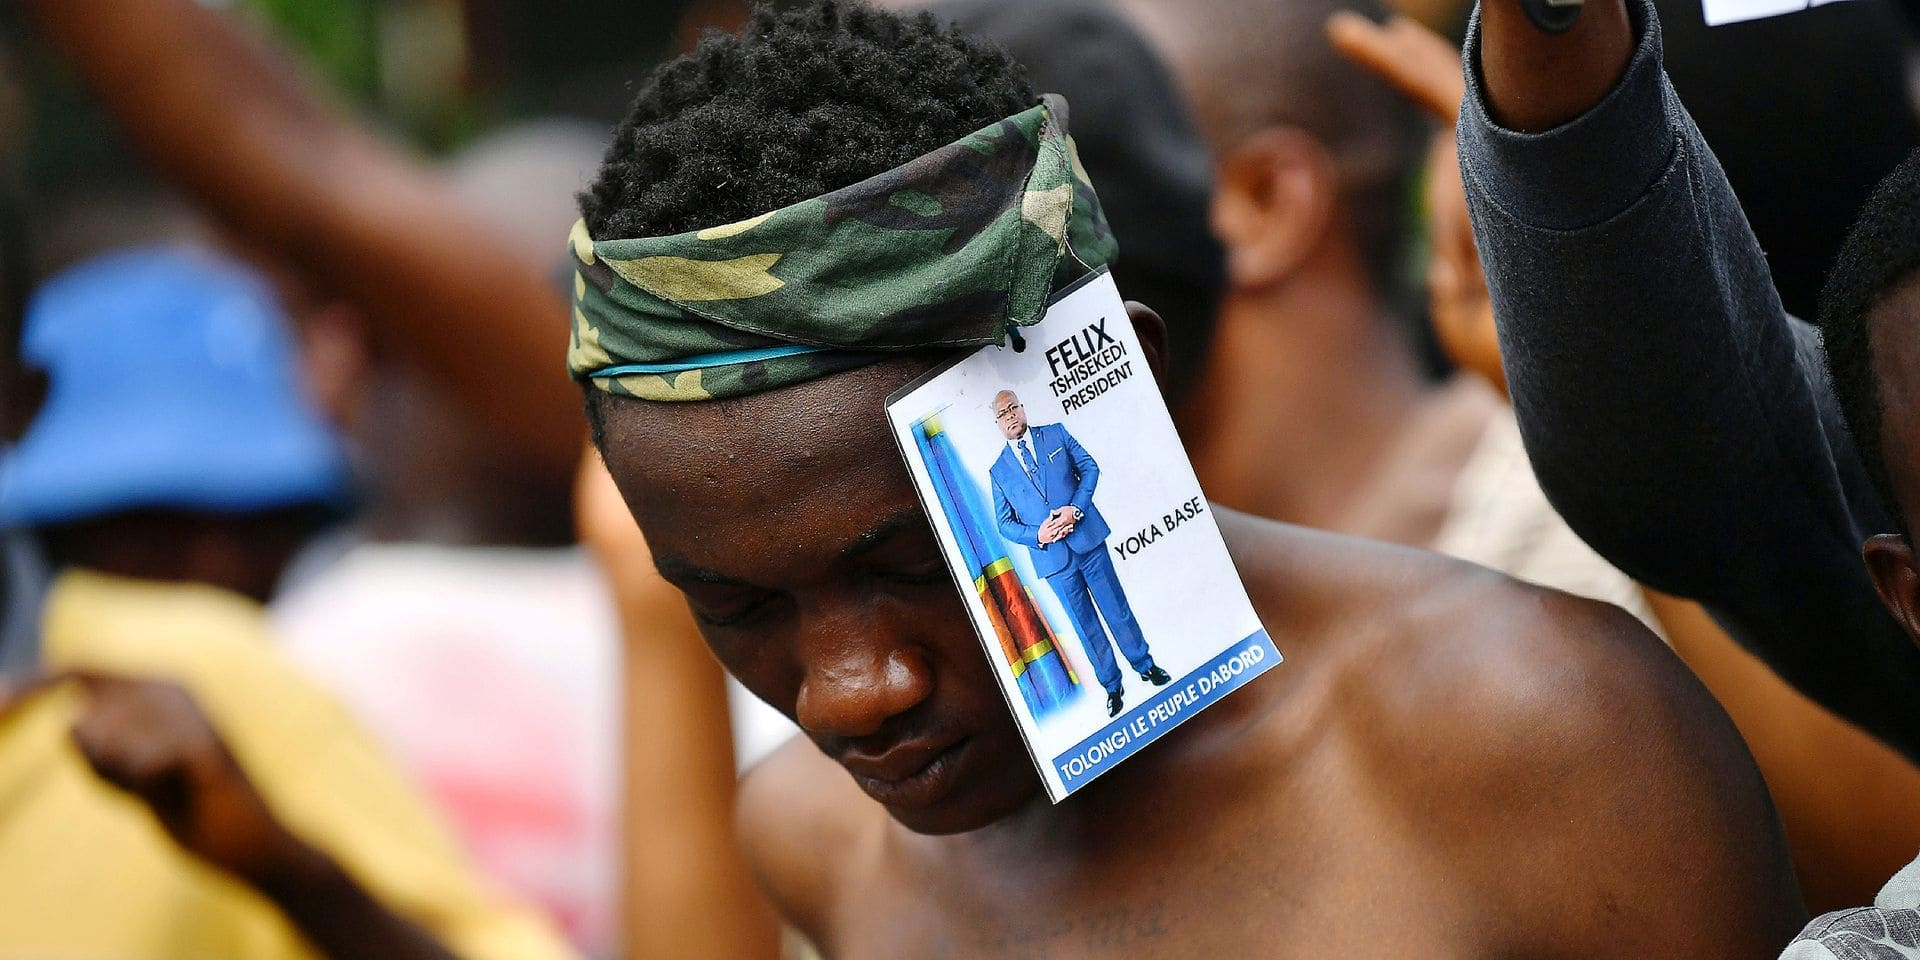 """A supporter of Felix Tshisekedi, DR Congo's opposition politician declared winner of the December's presidential poll, demonstrates in the streets of Kinshasa January 19, 2019 as they wait for an expected ruling in a case of another opposition candidate challenging the controversial result announced by the Commission electorale nationale independante (CENI). - The African Union (AU) has said there were """"serious doubts"""" over the outcome, and said heads of state and government agreed to """"urgently dispatch"""" a high-level delegation to DRC. (Photo by TONY KARUMBA / AFP)"""